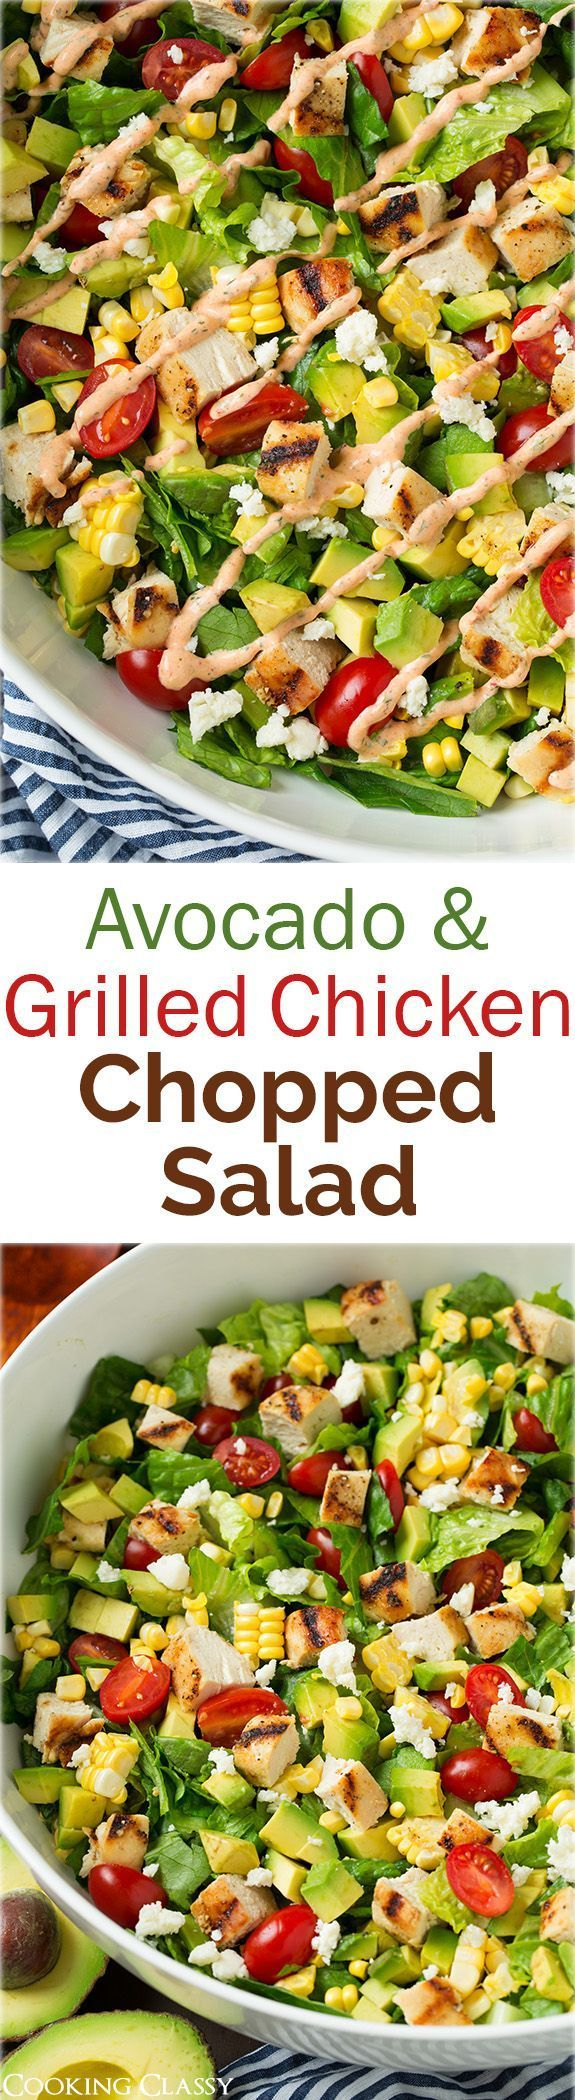 Avocado and Grilled Chicken Chopped Salad with Skinny Chipotle-Lime Ranch - I could eat this salad every single day! It was SO good! Used the left over ranch to dip chicken tenders in.: